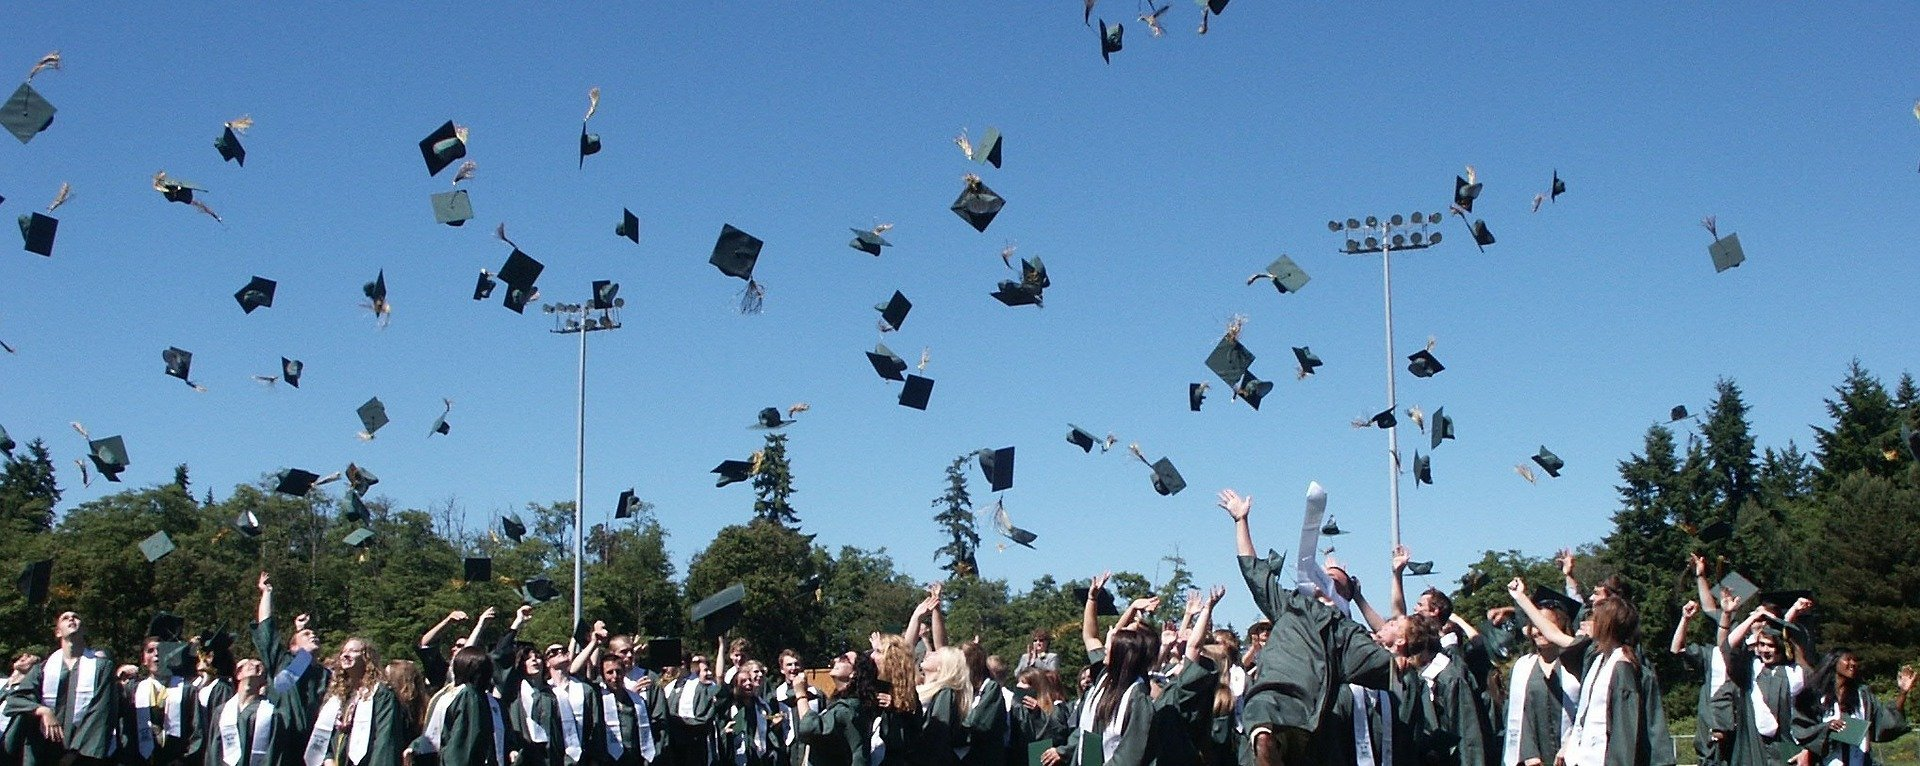 A bunch of high school graduates throw their graduation caps up in the air while celebrating outdoors | Photo: Pixabay/Gillian Callison